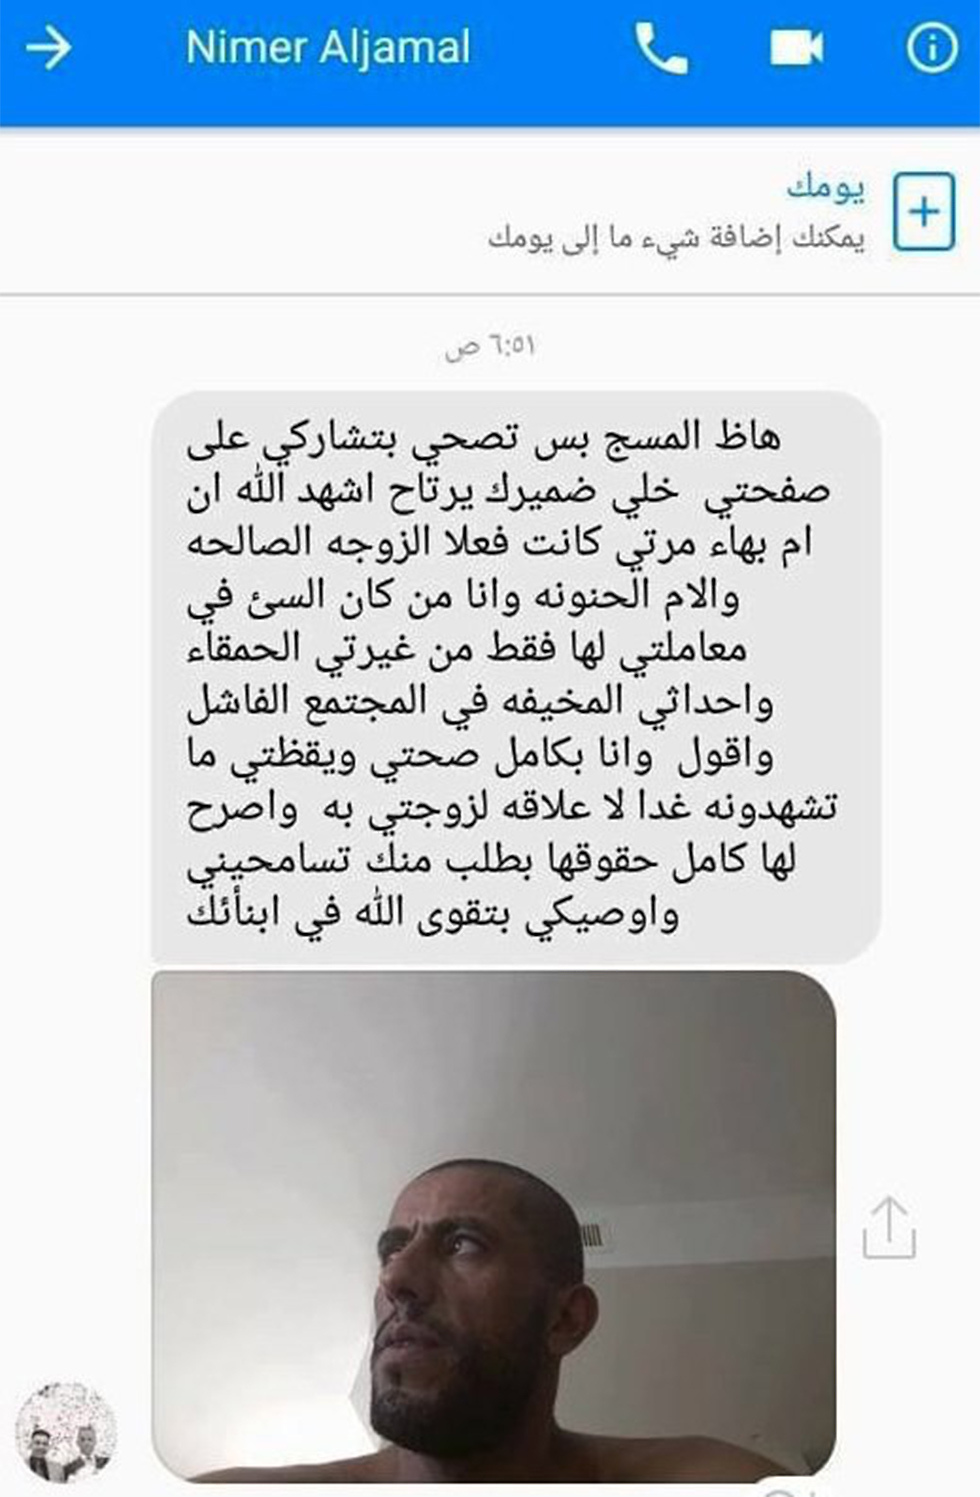 Nimer Jamal's message to his wife on Facebook.